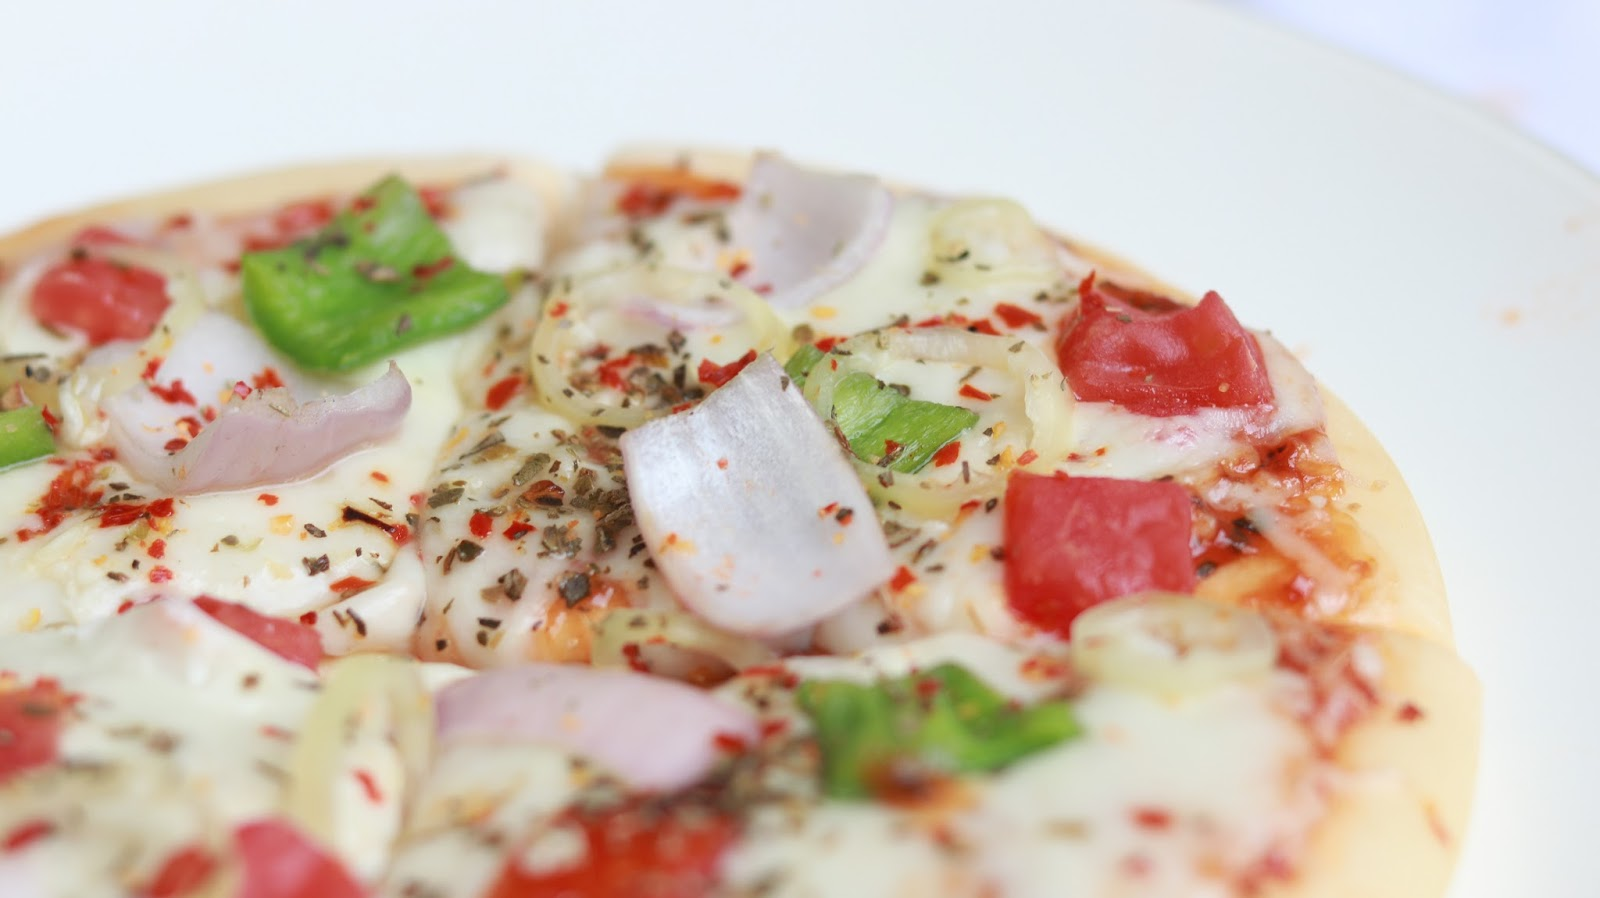 How to make dominos style mexican green wave pizza at home easily try this yummy cheesy dominos style pizza called mexican green wave pizza topped with double cheese fresh vegetable slices and spicy red chili flakes forumfinder Image collections